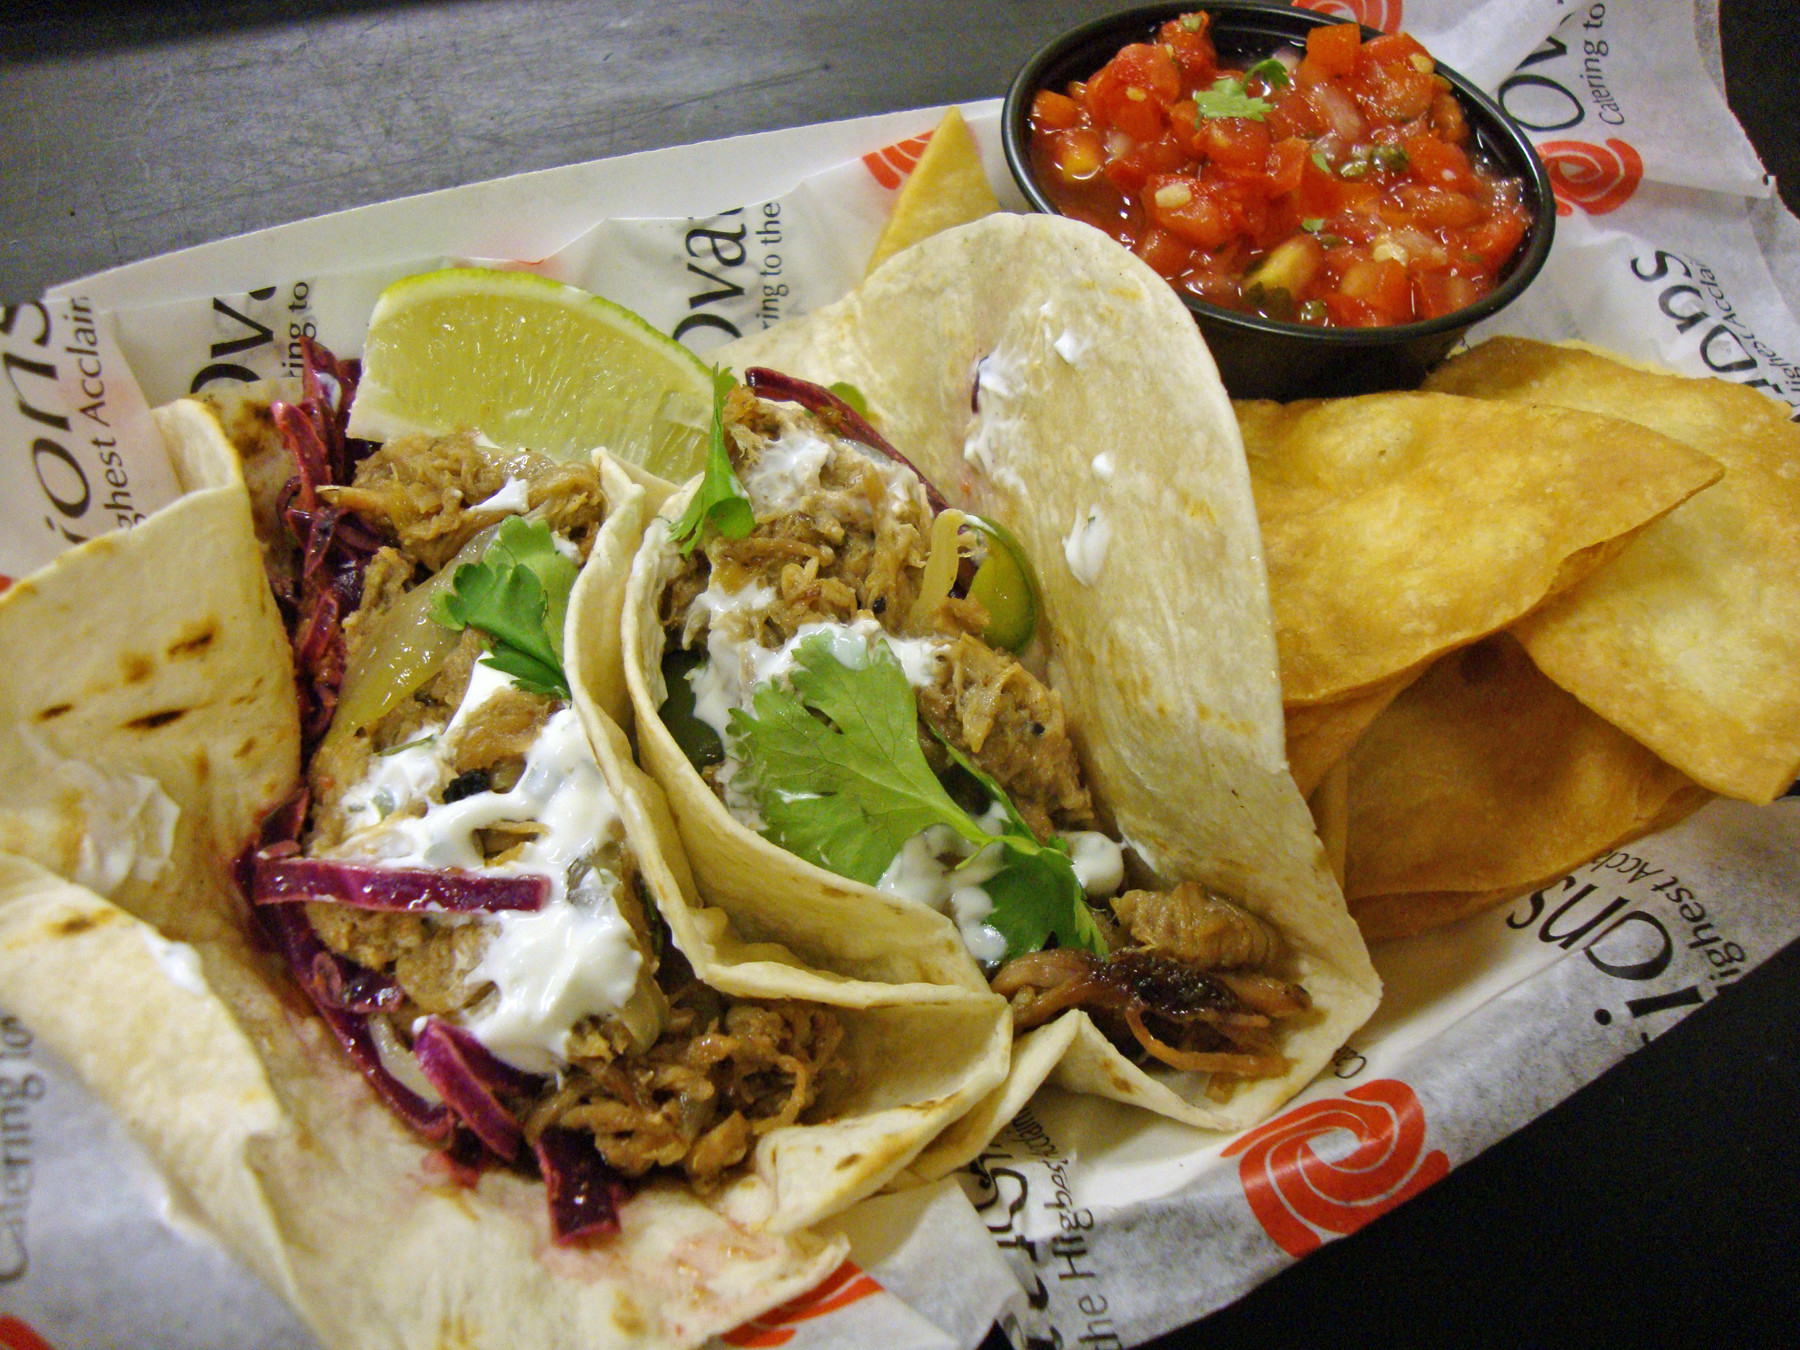 The Duval Taco Company's smoky braised pulled-pork carnitas include a sautéed green-pepper-and-onion medley and cilantro lime crema.